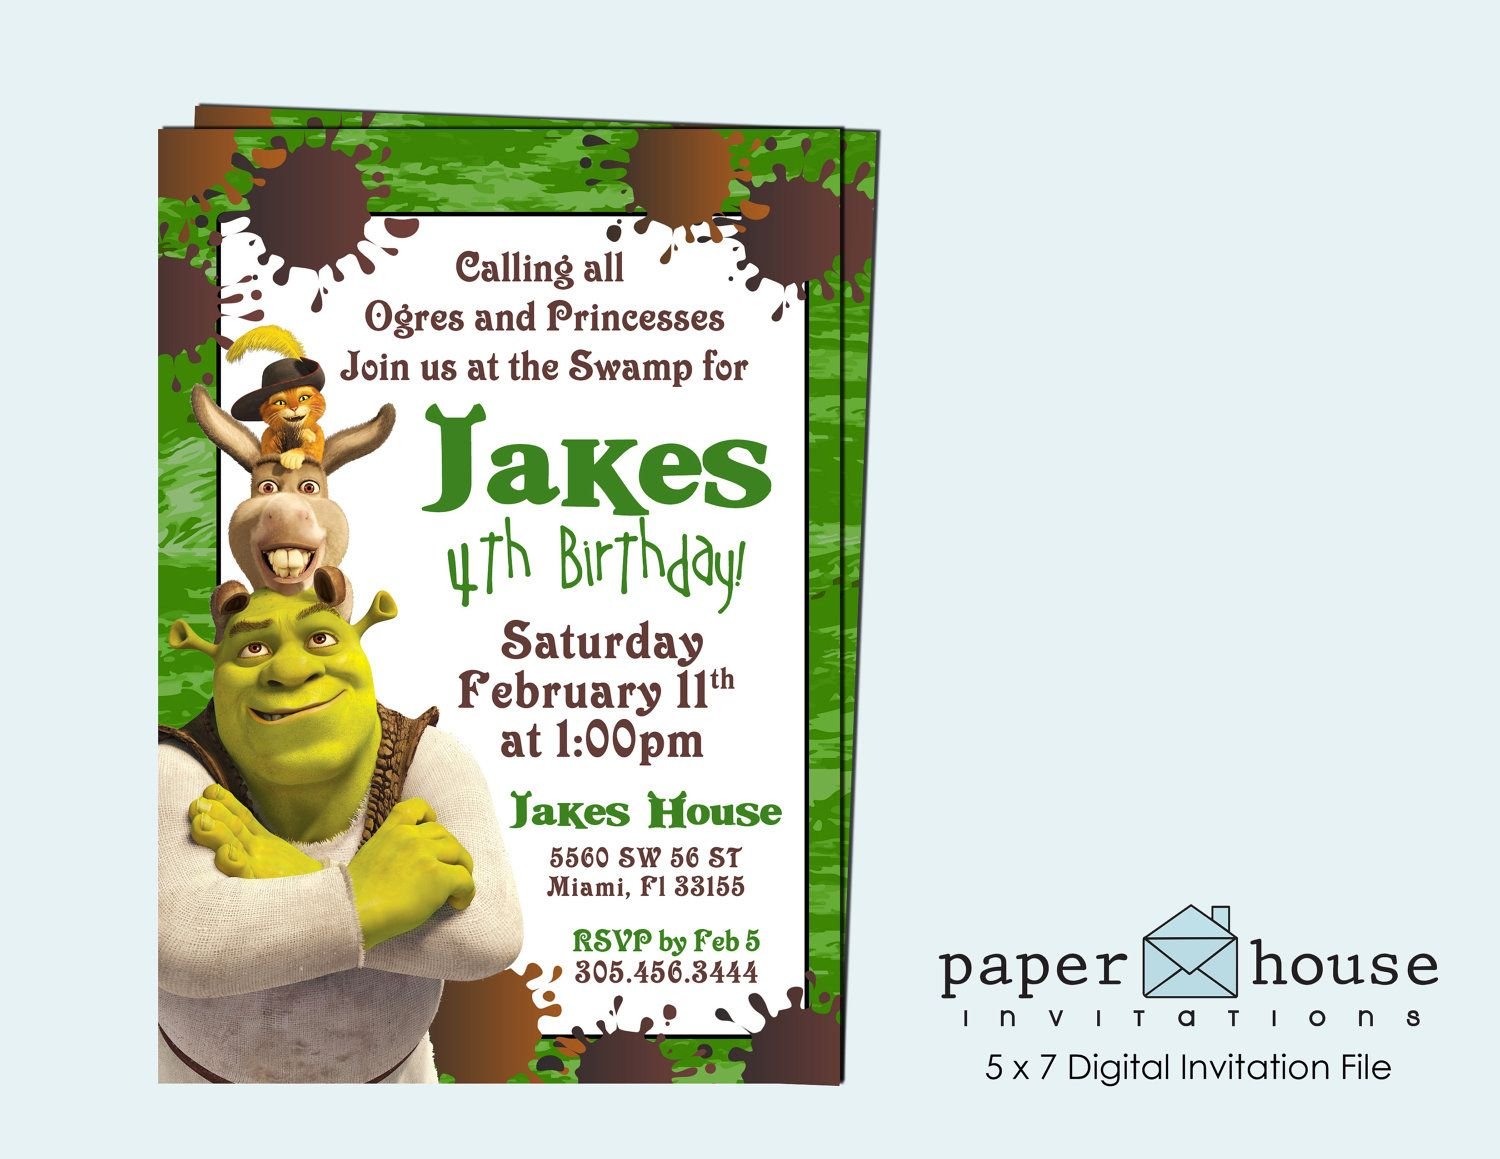 Kimberlywilliams shrek birthday invitation 5 x 7 digital they shrek birthday invitation 5 x 7 digital they personalize and email to you you print at home or walmart walgreens etc so easyaffordable filmwisefo Images